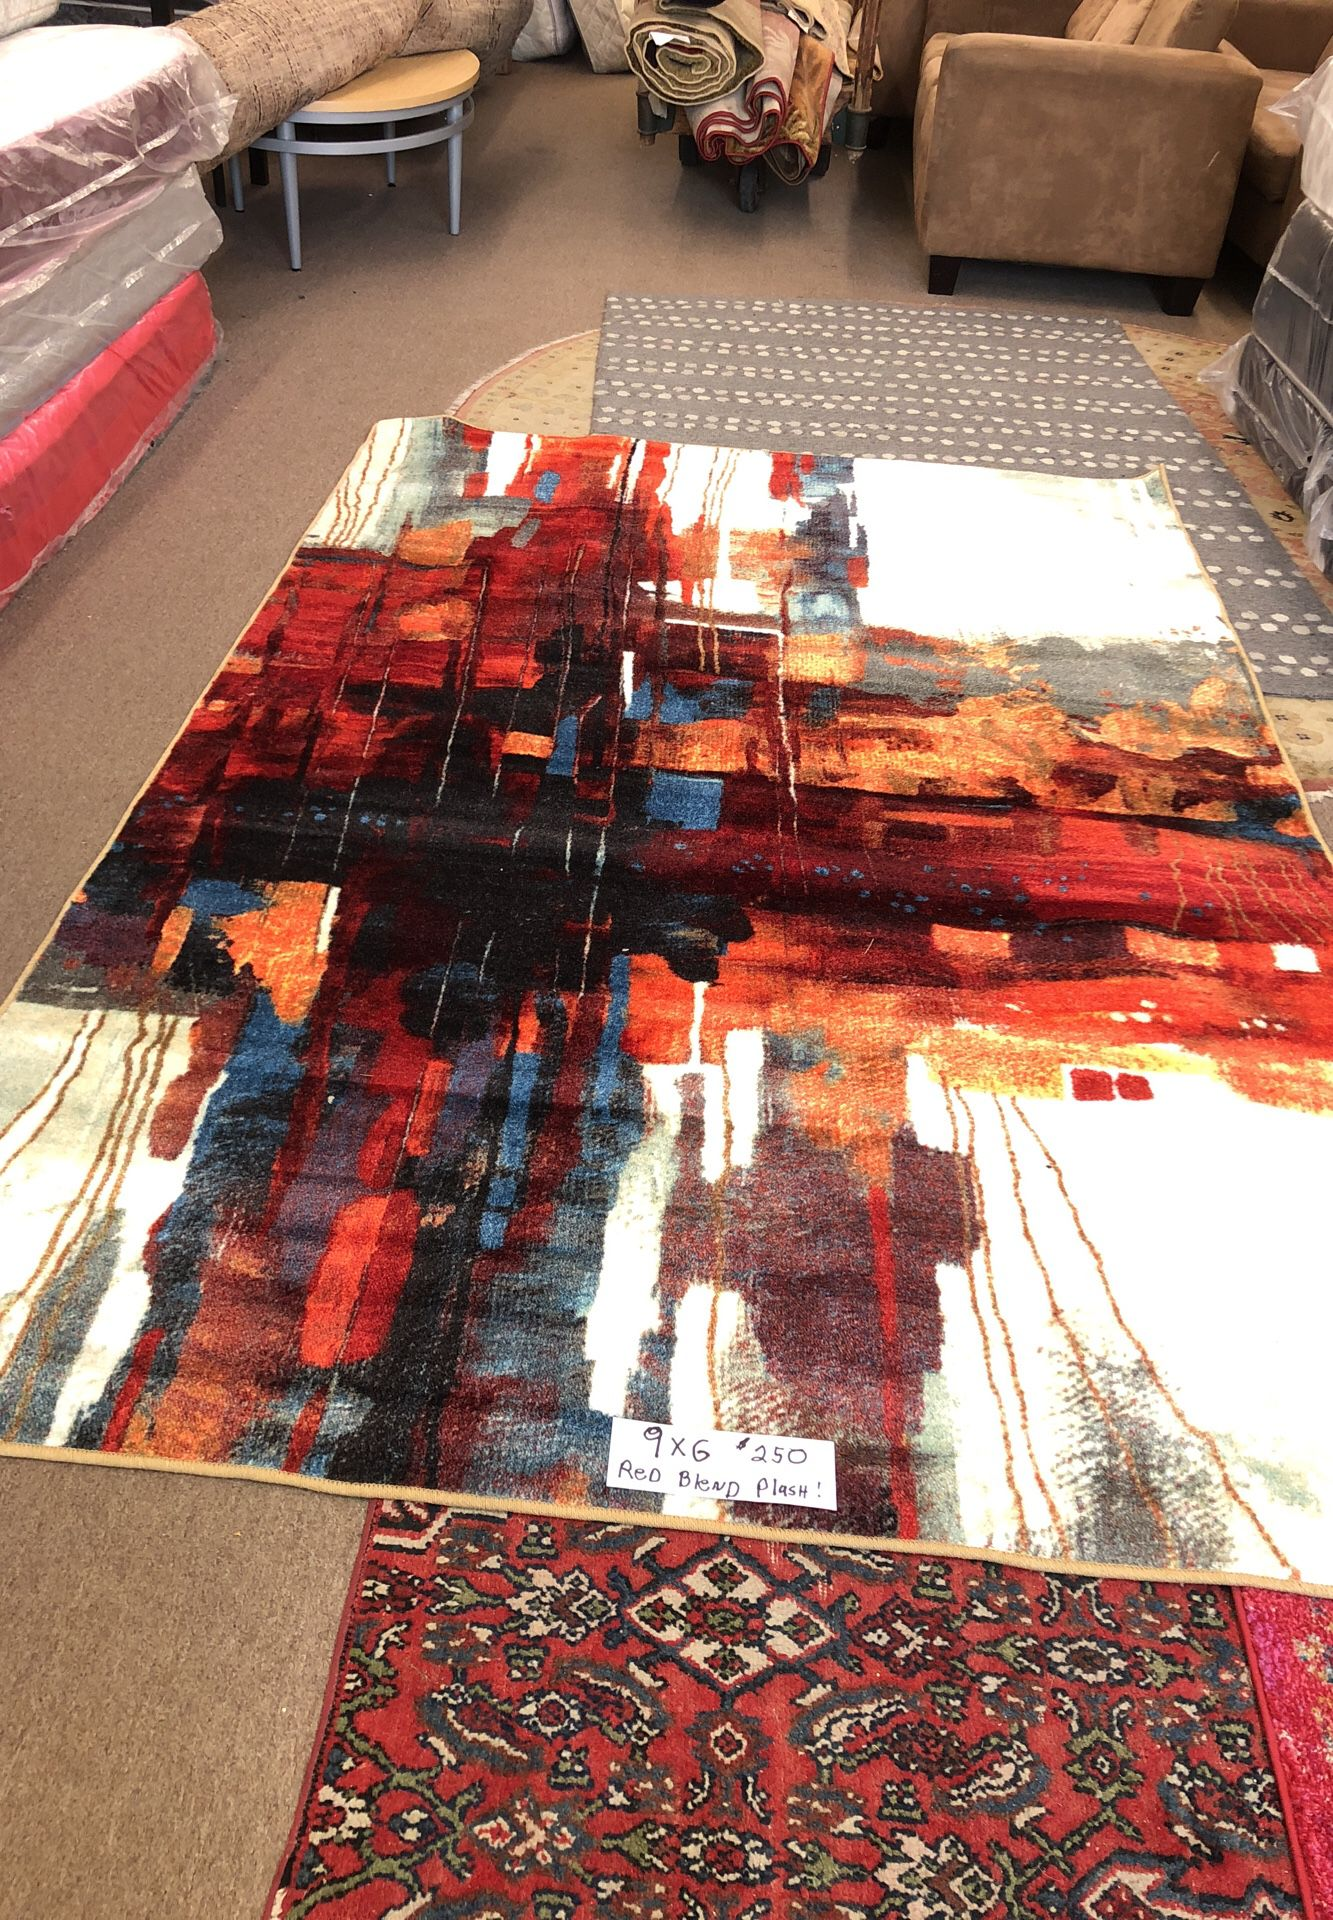 Rug. Red Blend. Beautiful Colors. Deep Plush. $250. OBO. Red Blend